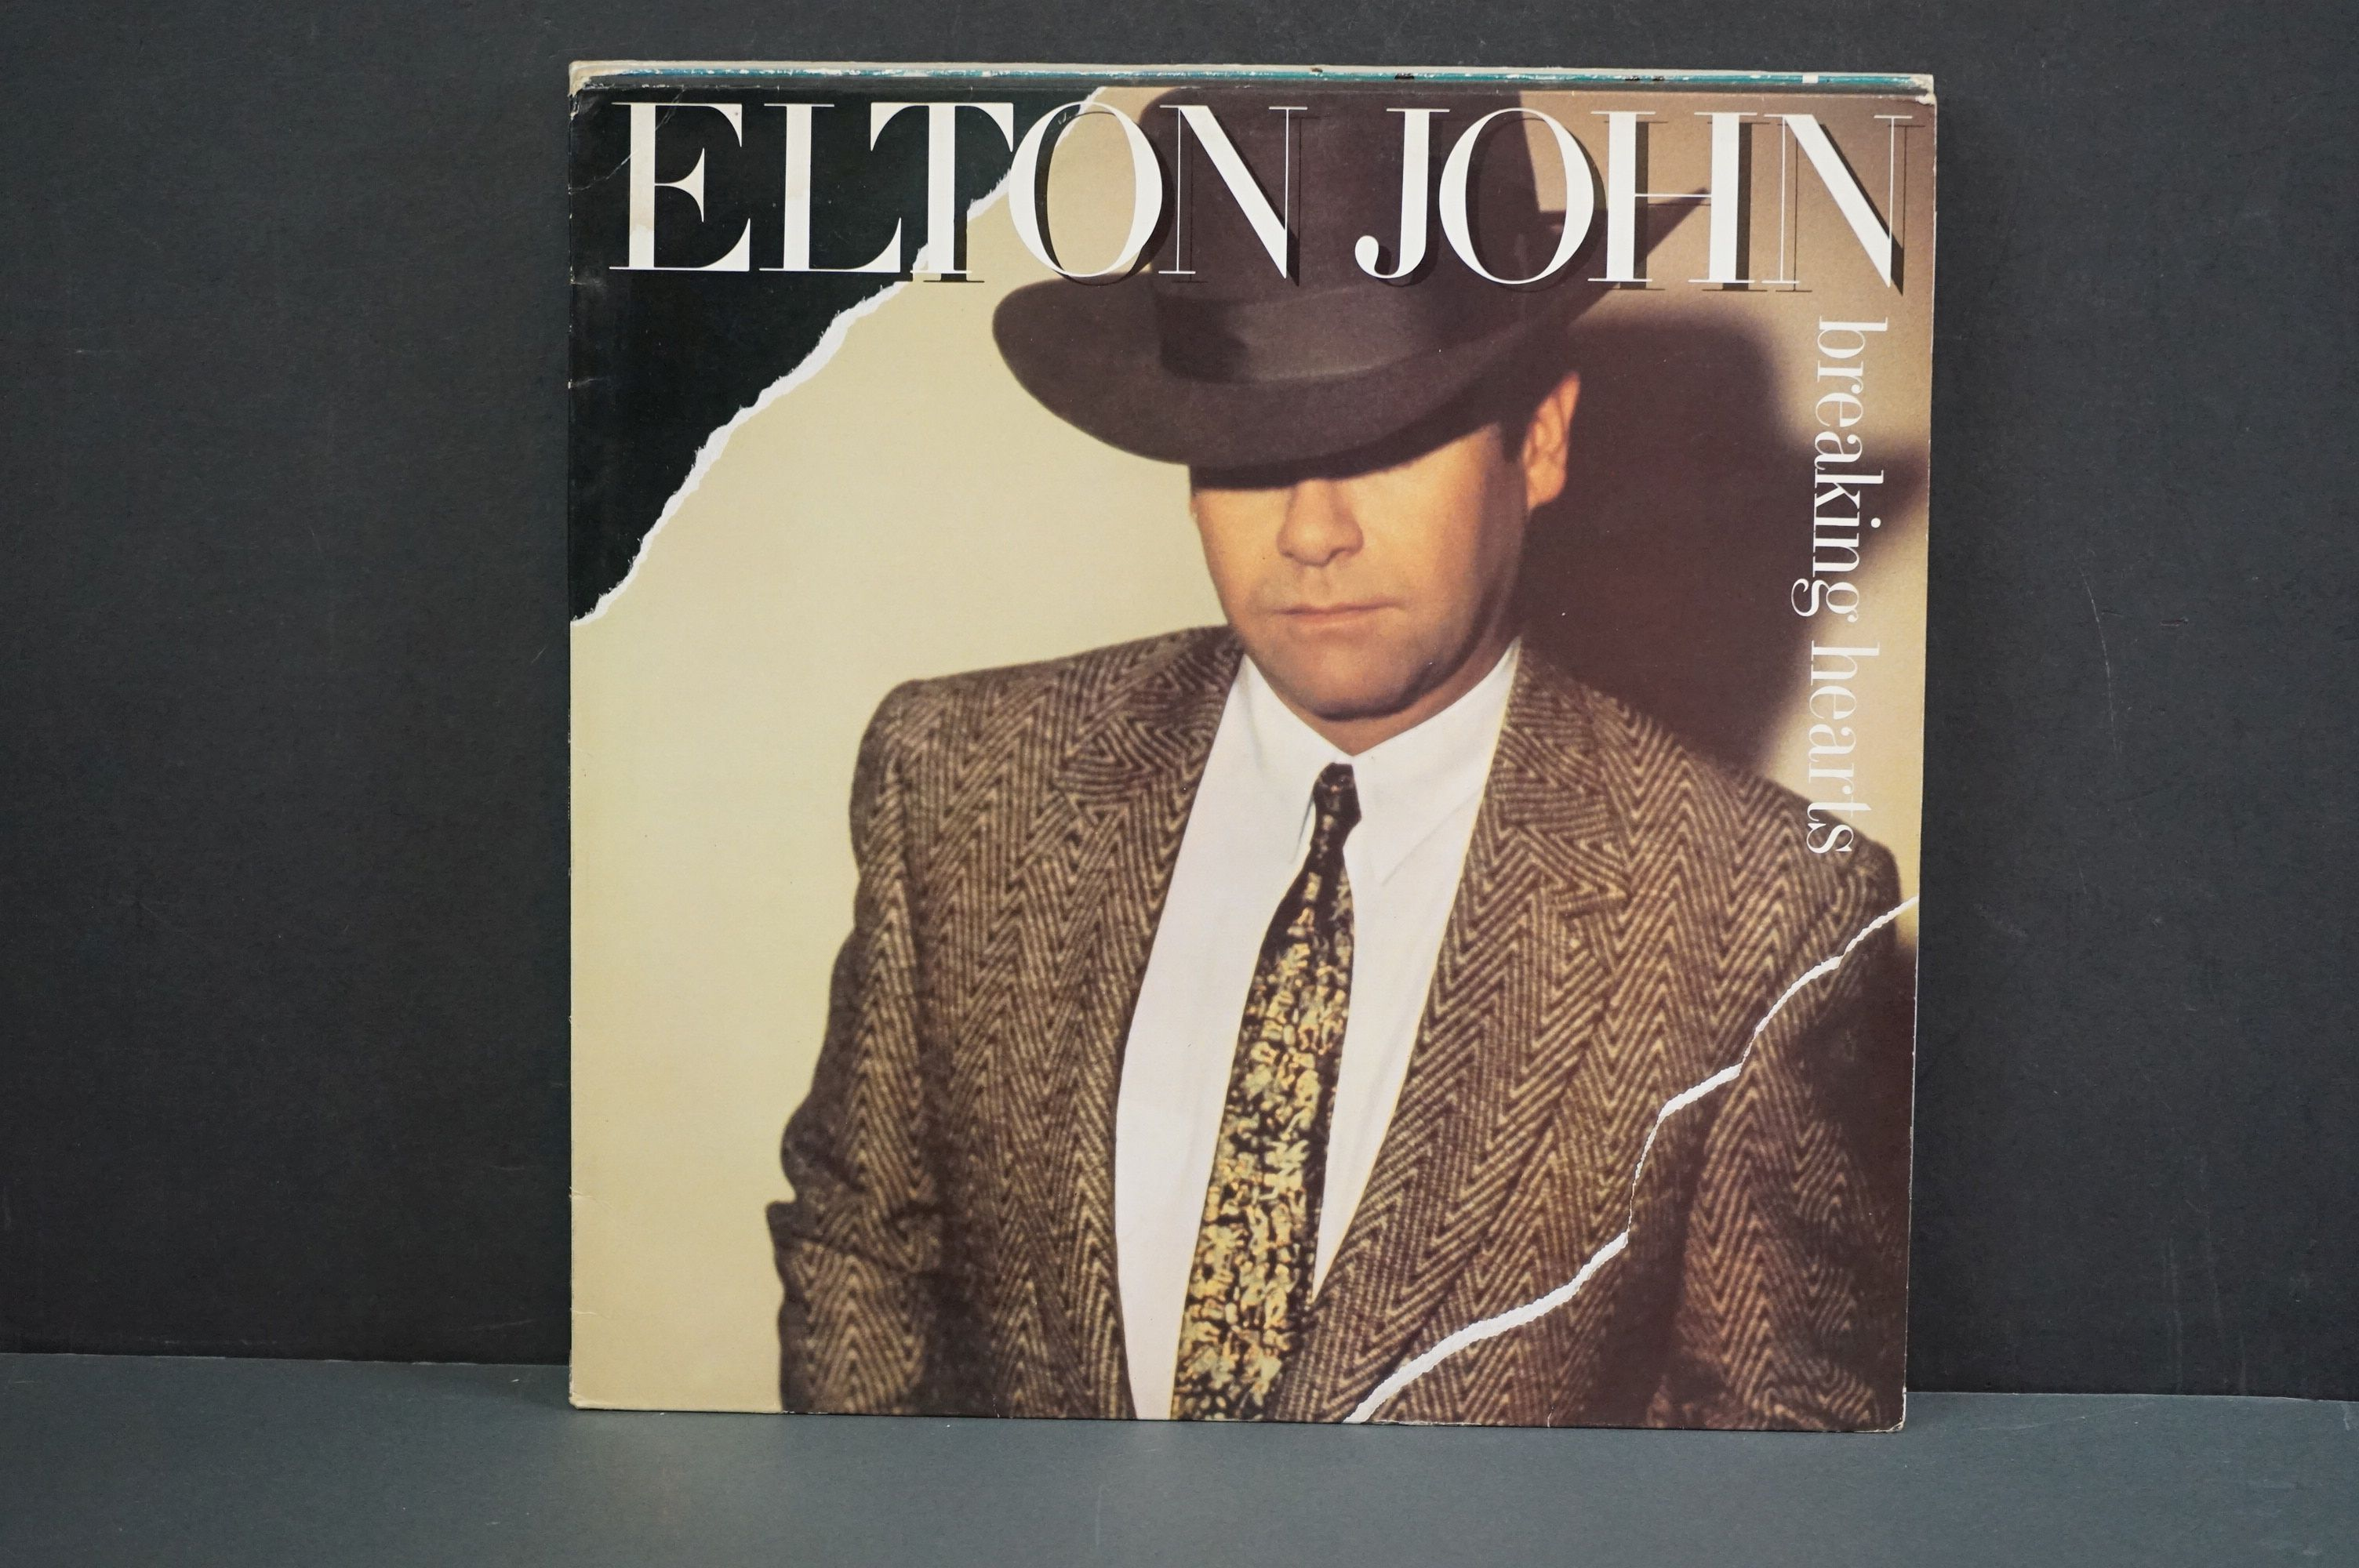 Vinyl - 16 Elton John LPs to include A Single Man, Blue Moves, Greatest Hits, Goodbye Yellow Brick - Image 12 of 16